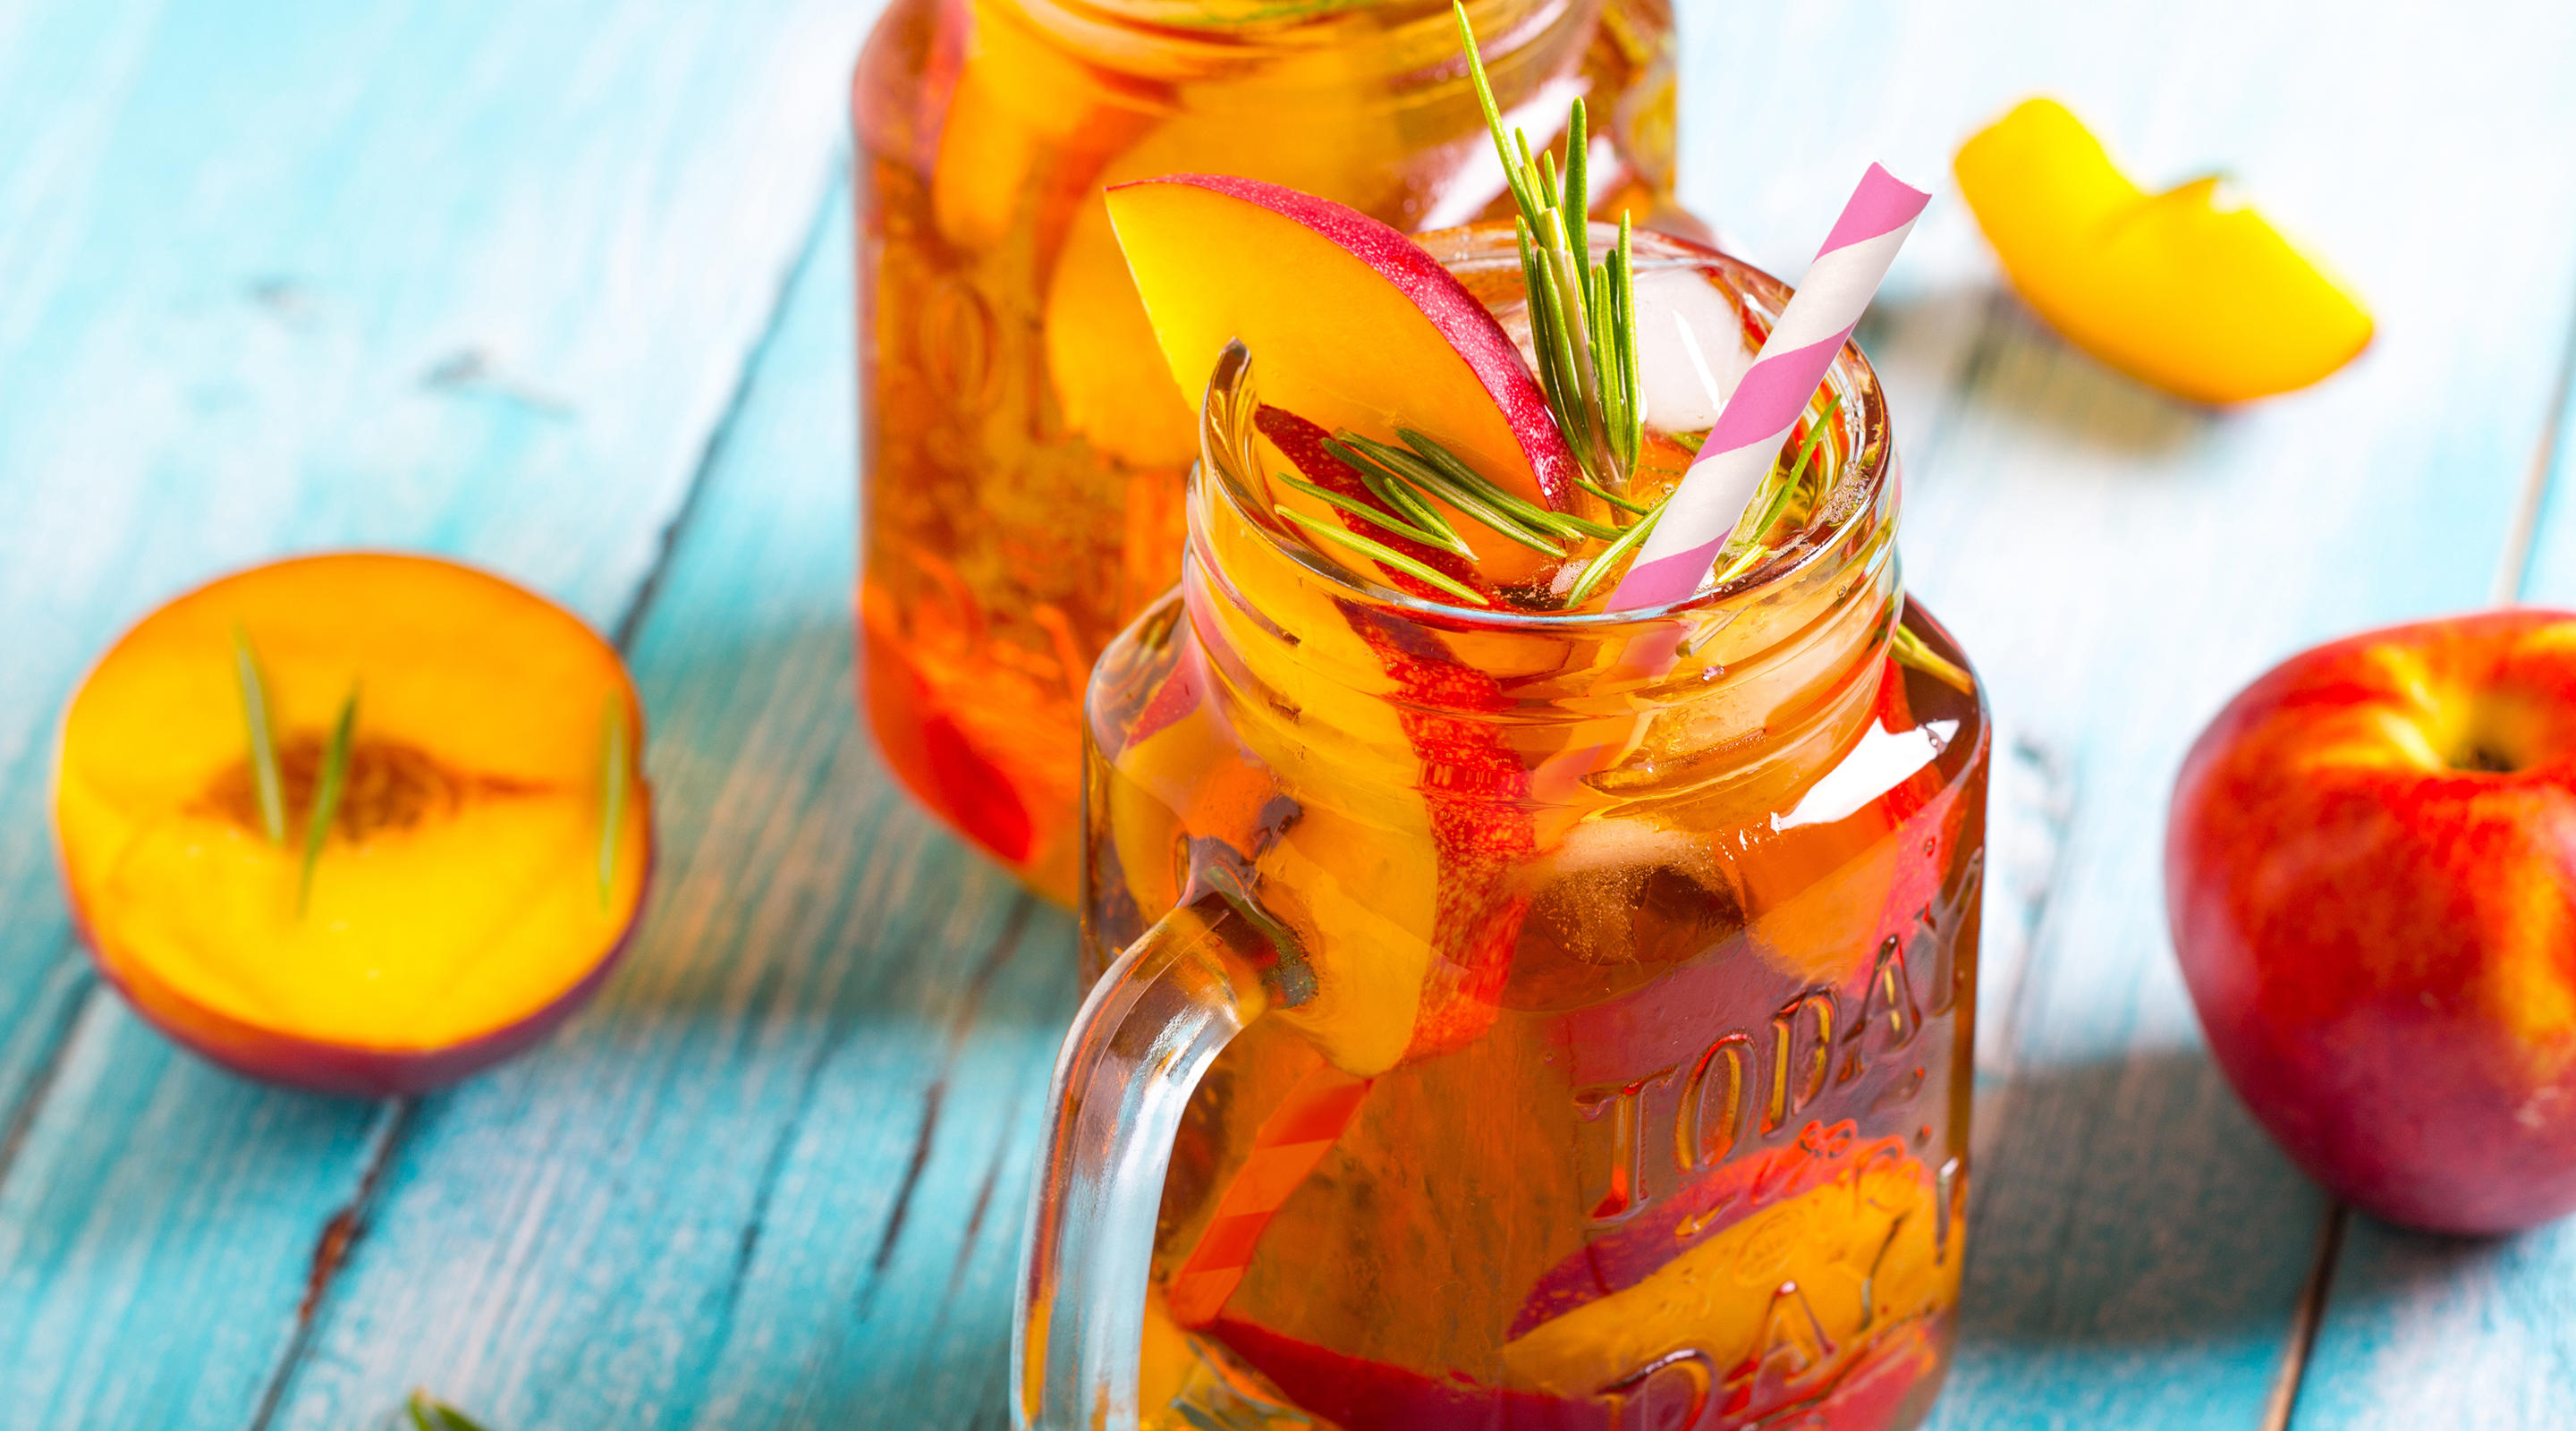 Fresh peach iced tea with mint and rosemary from Sweet Tea.